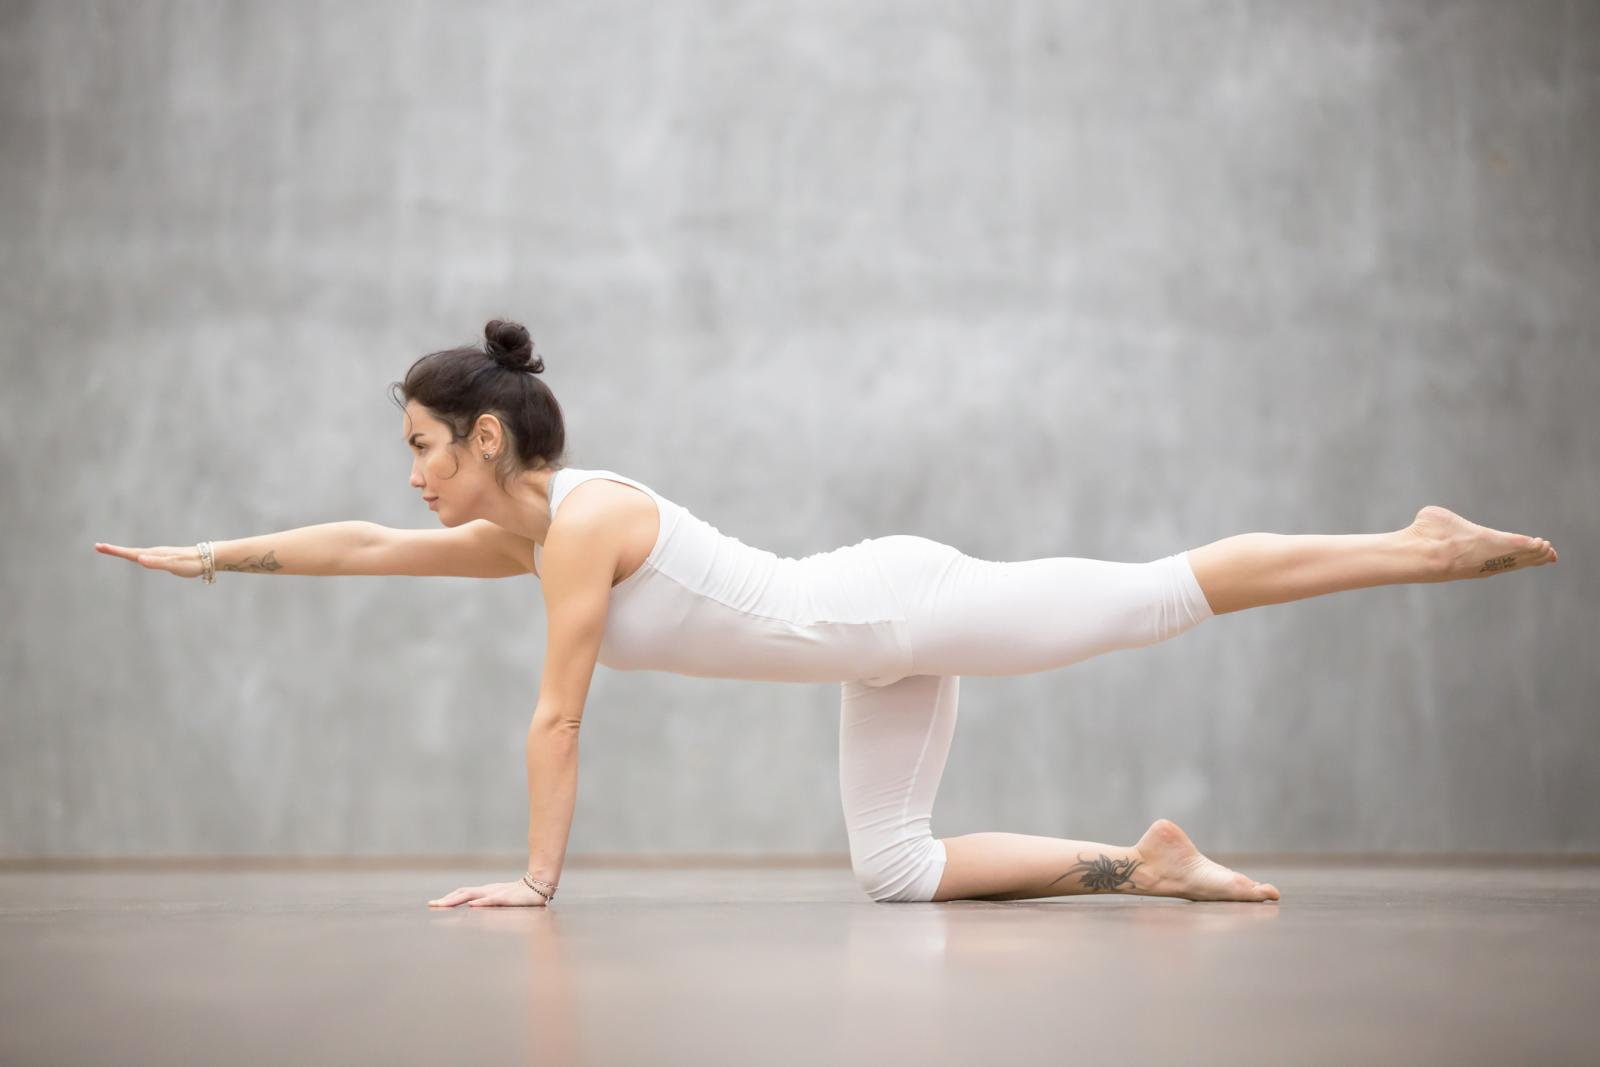 Woman doing Bird dog pose